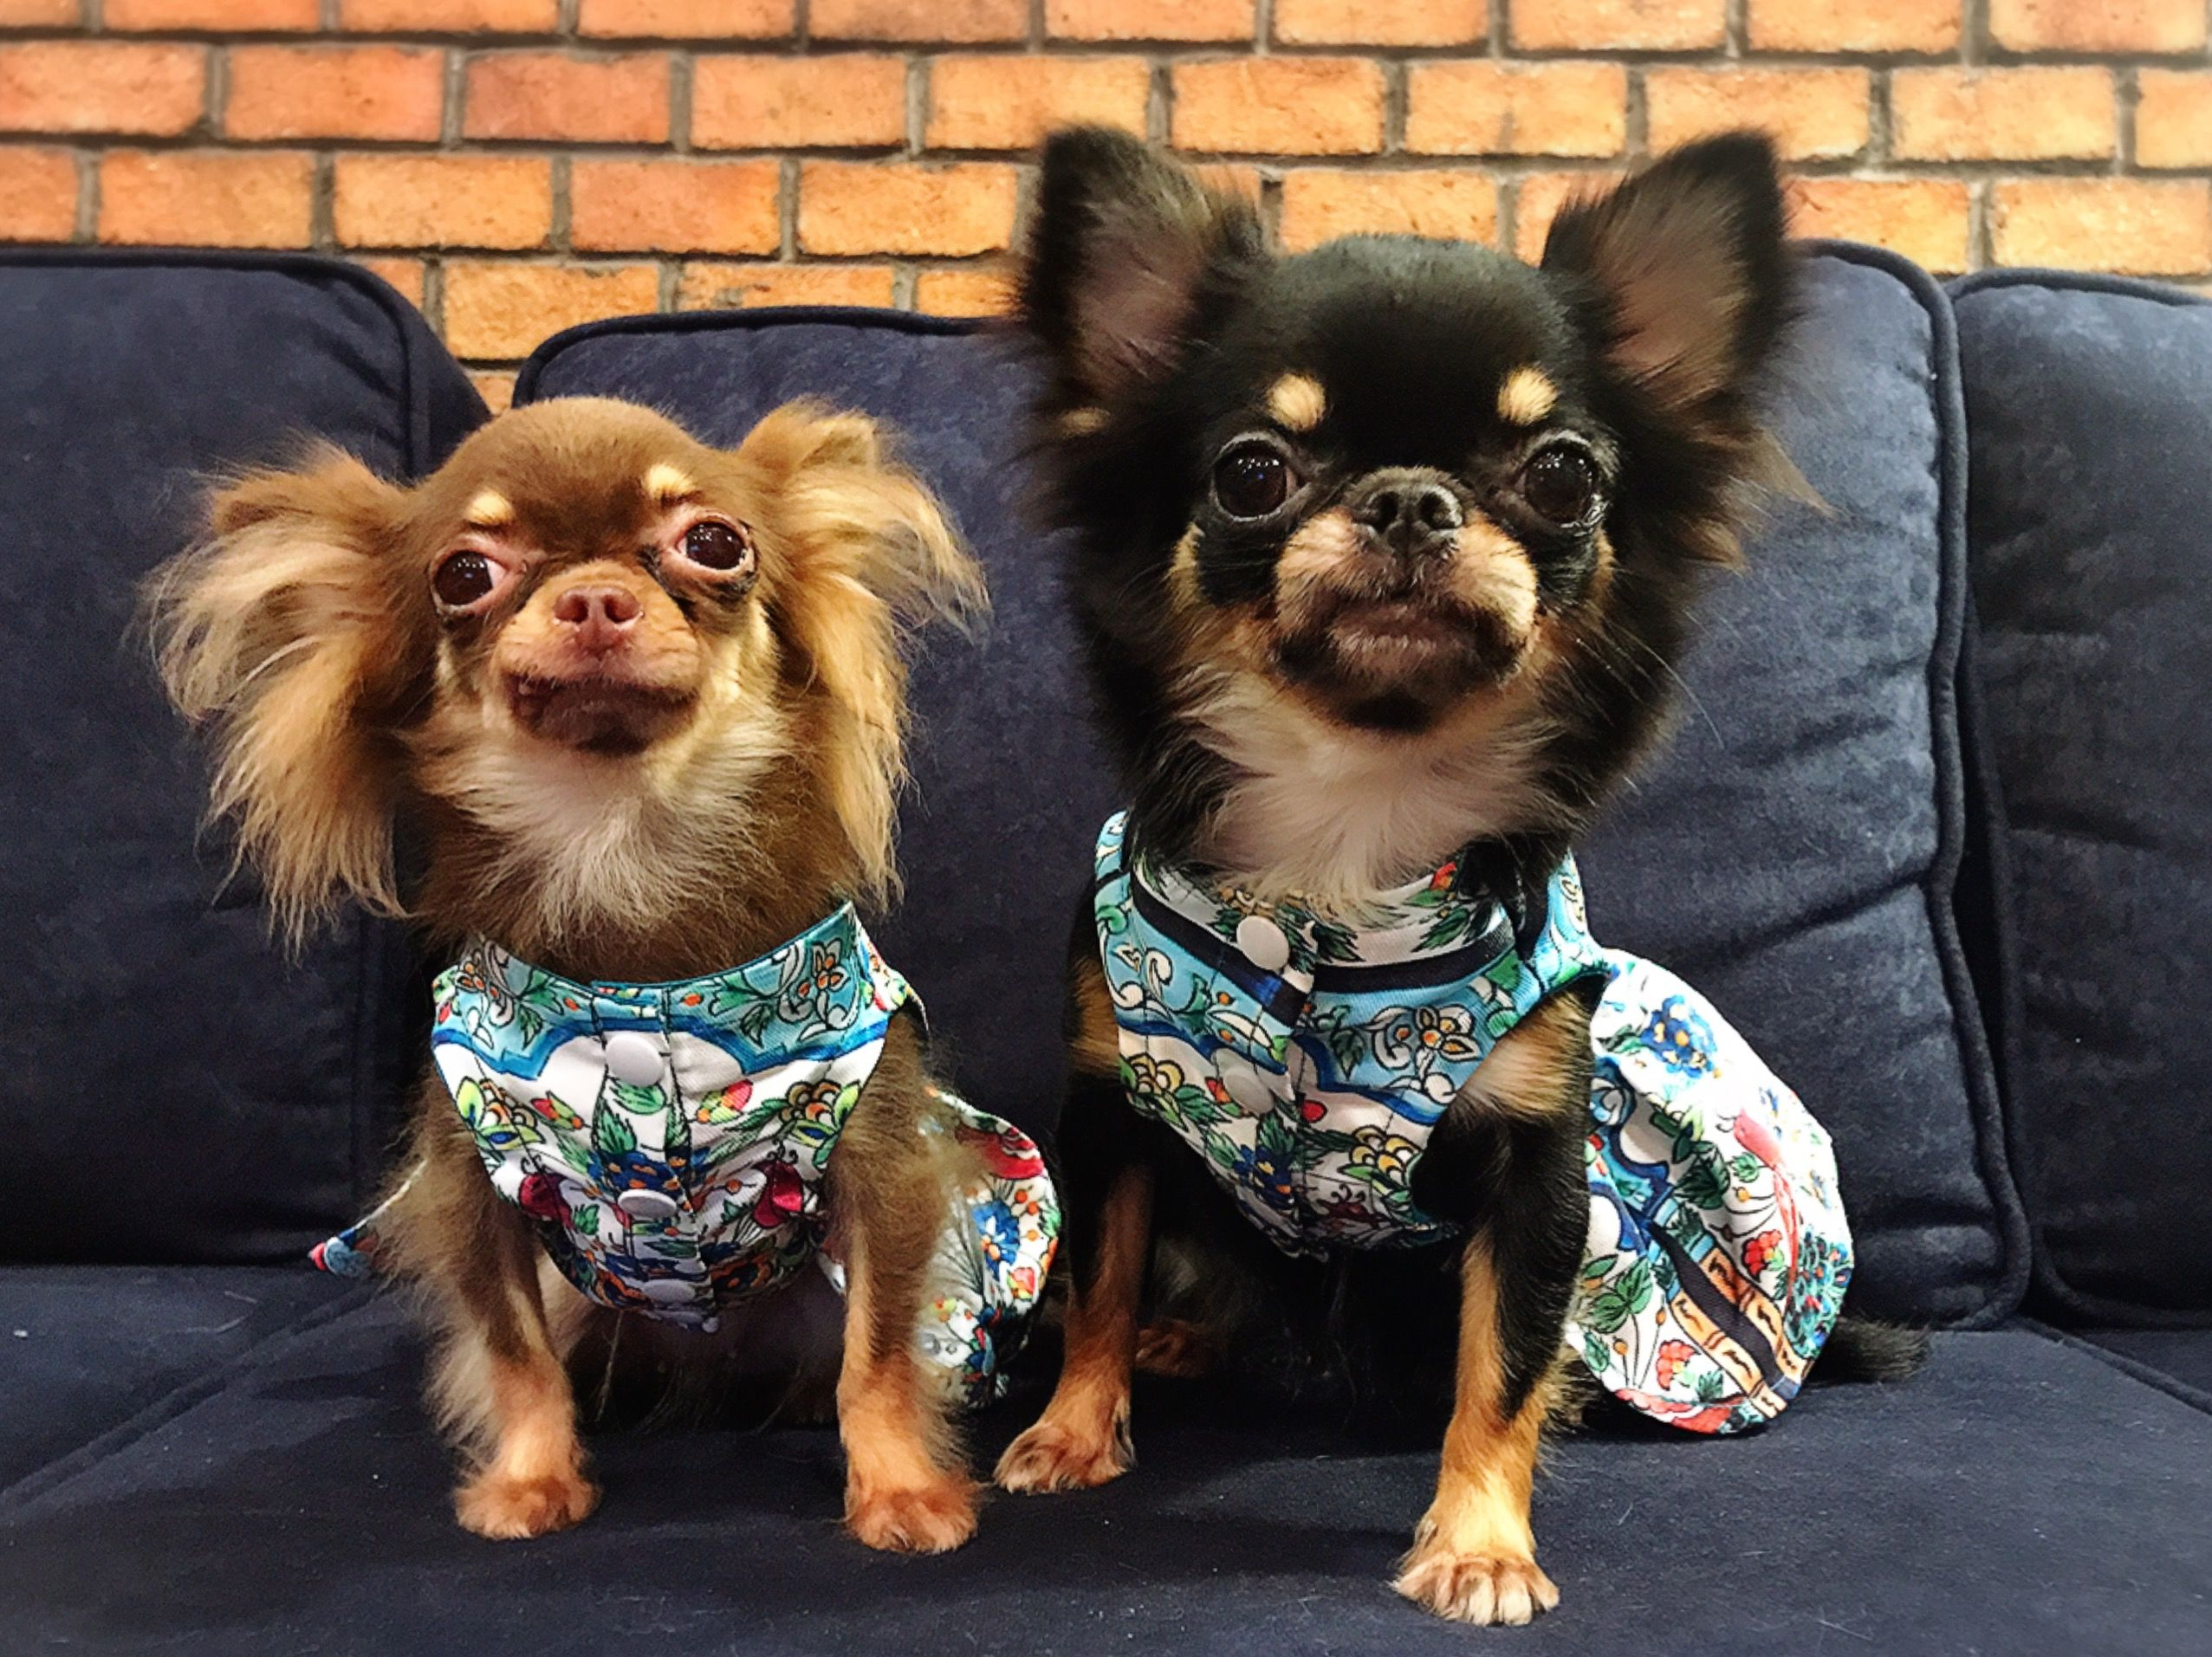 Must see Clothes Army Adorable Dog - e1a136a411d48184b088d0427a8e40d2  Graphic_721578  .jpg